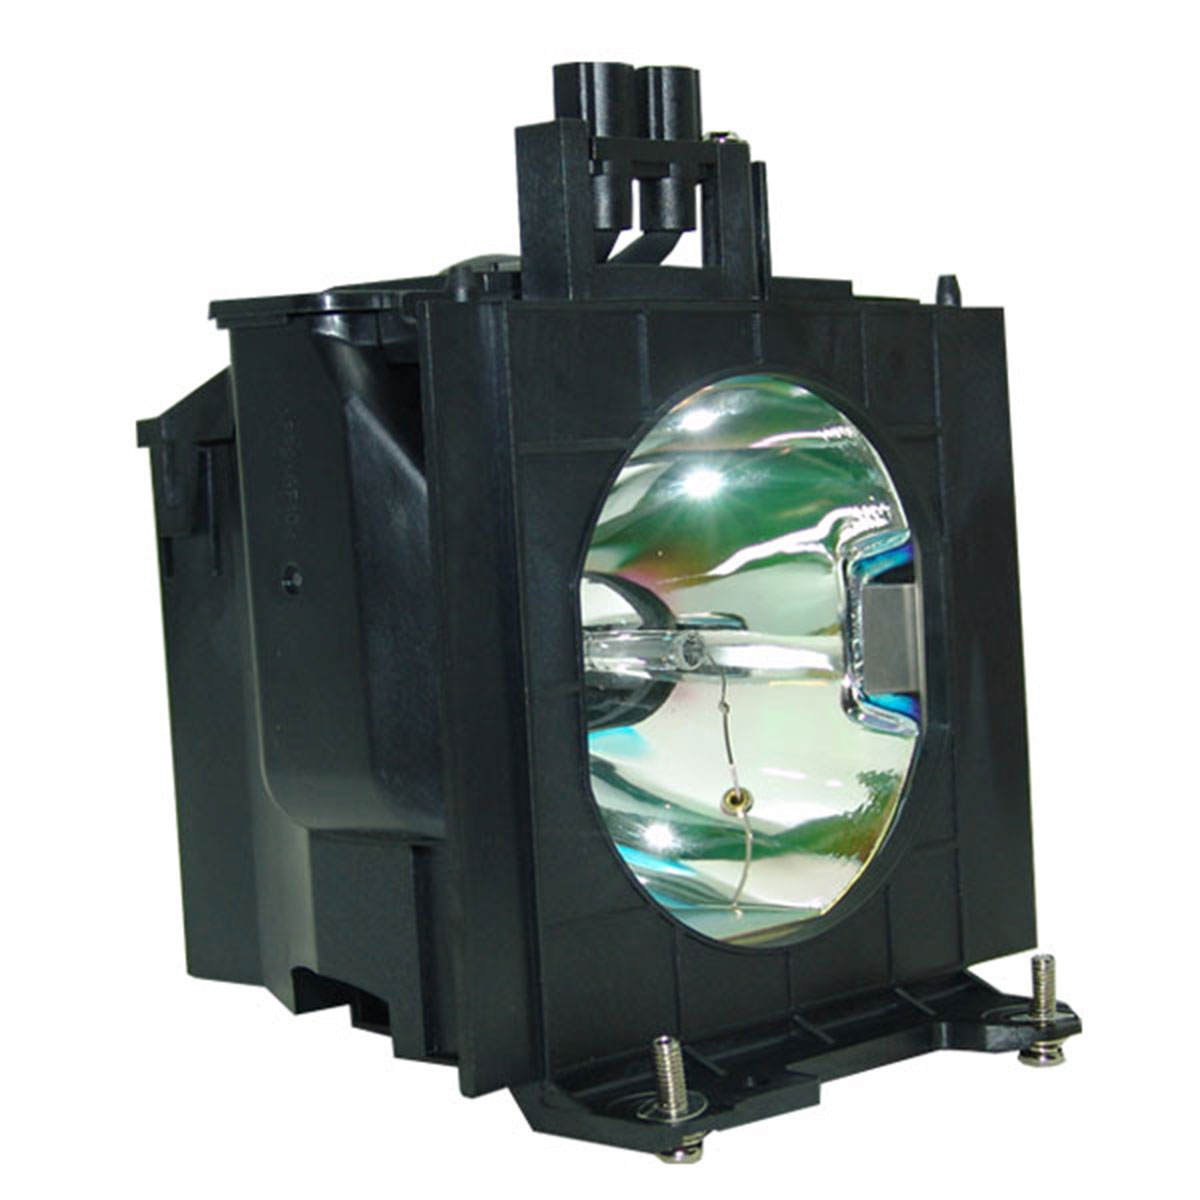 Compatible Panasonic Projector Lamp with Housing Dual Replaces Model PT-D5600U